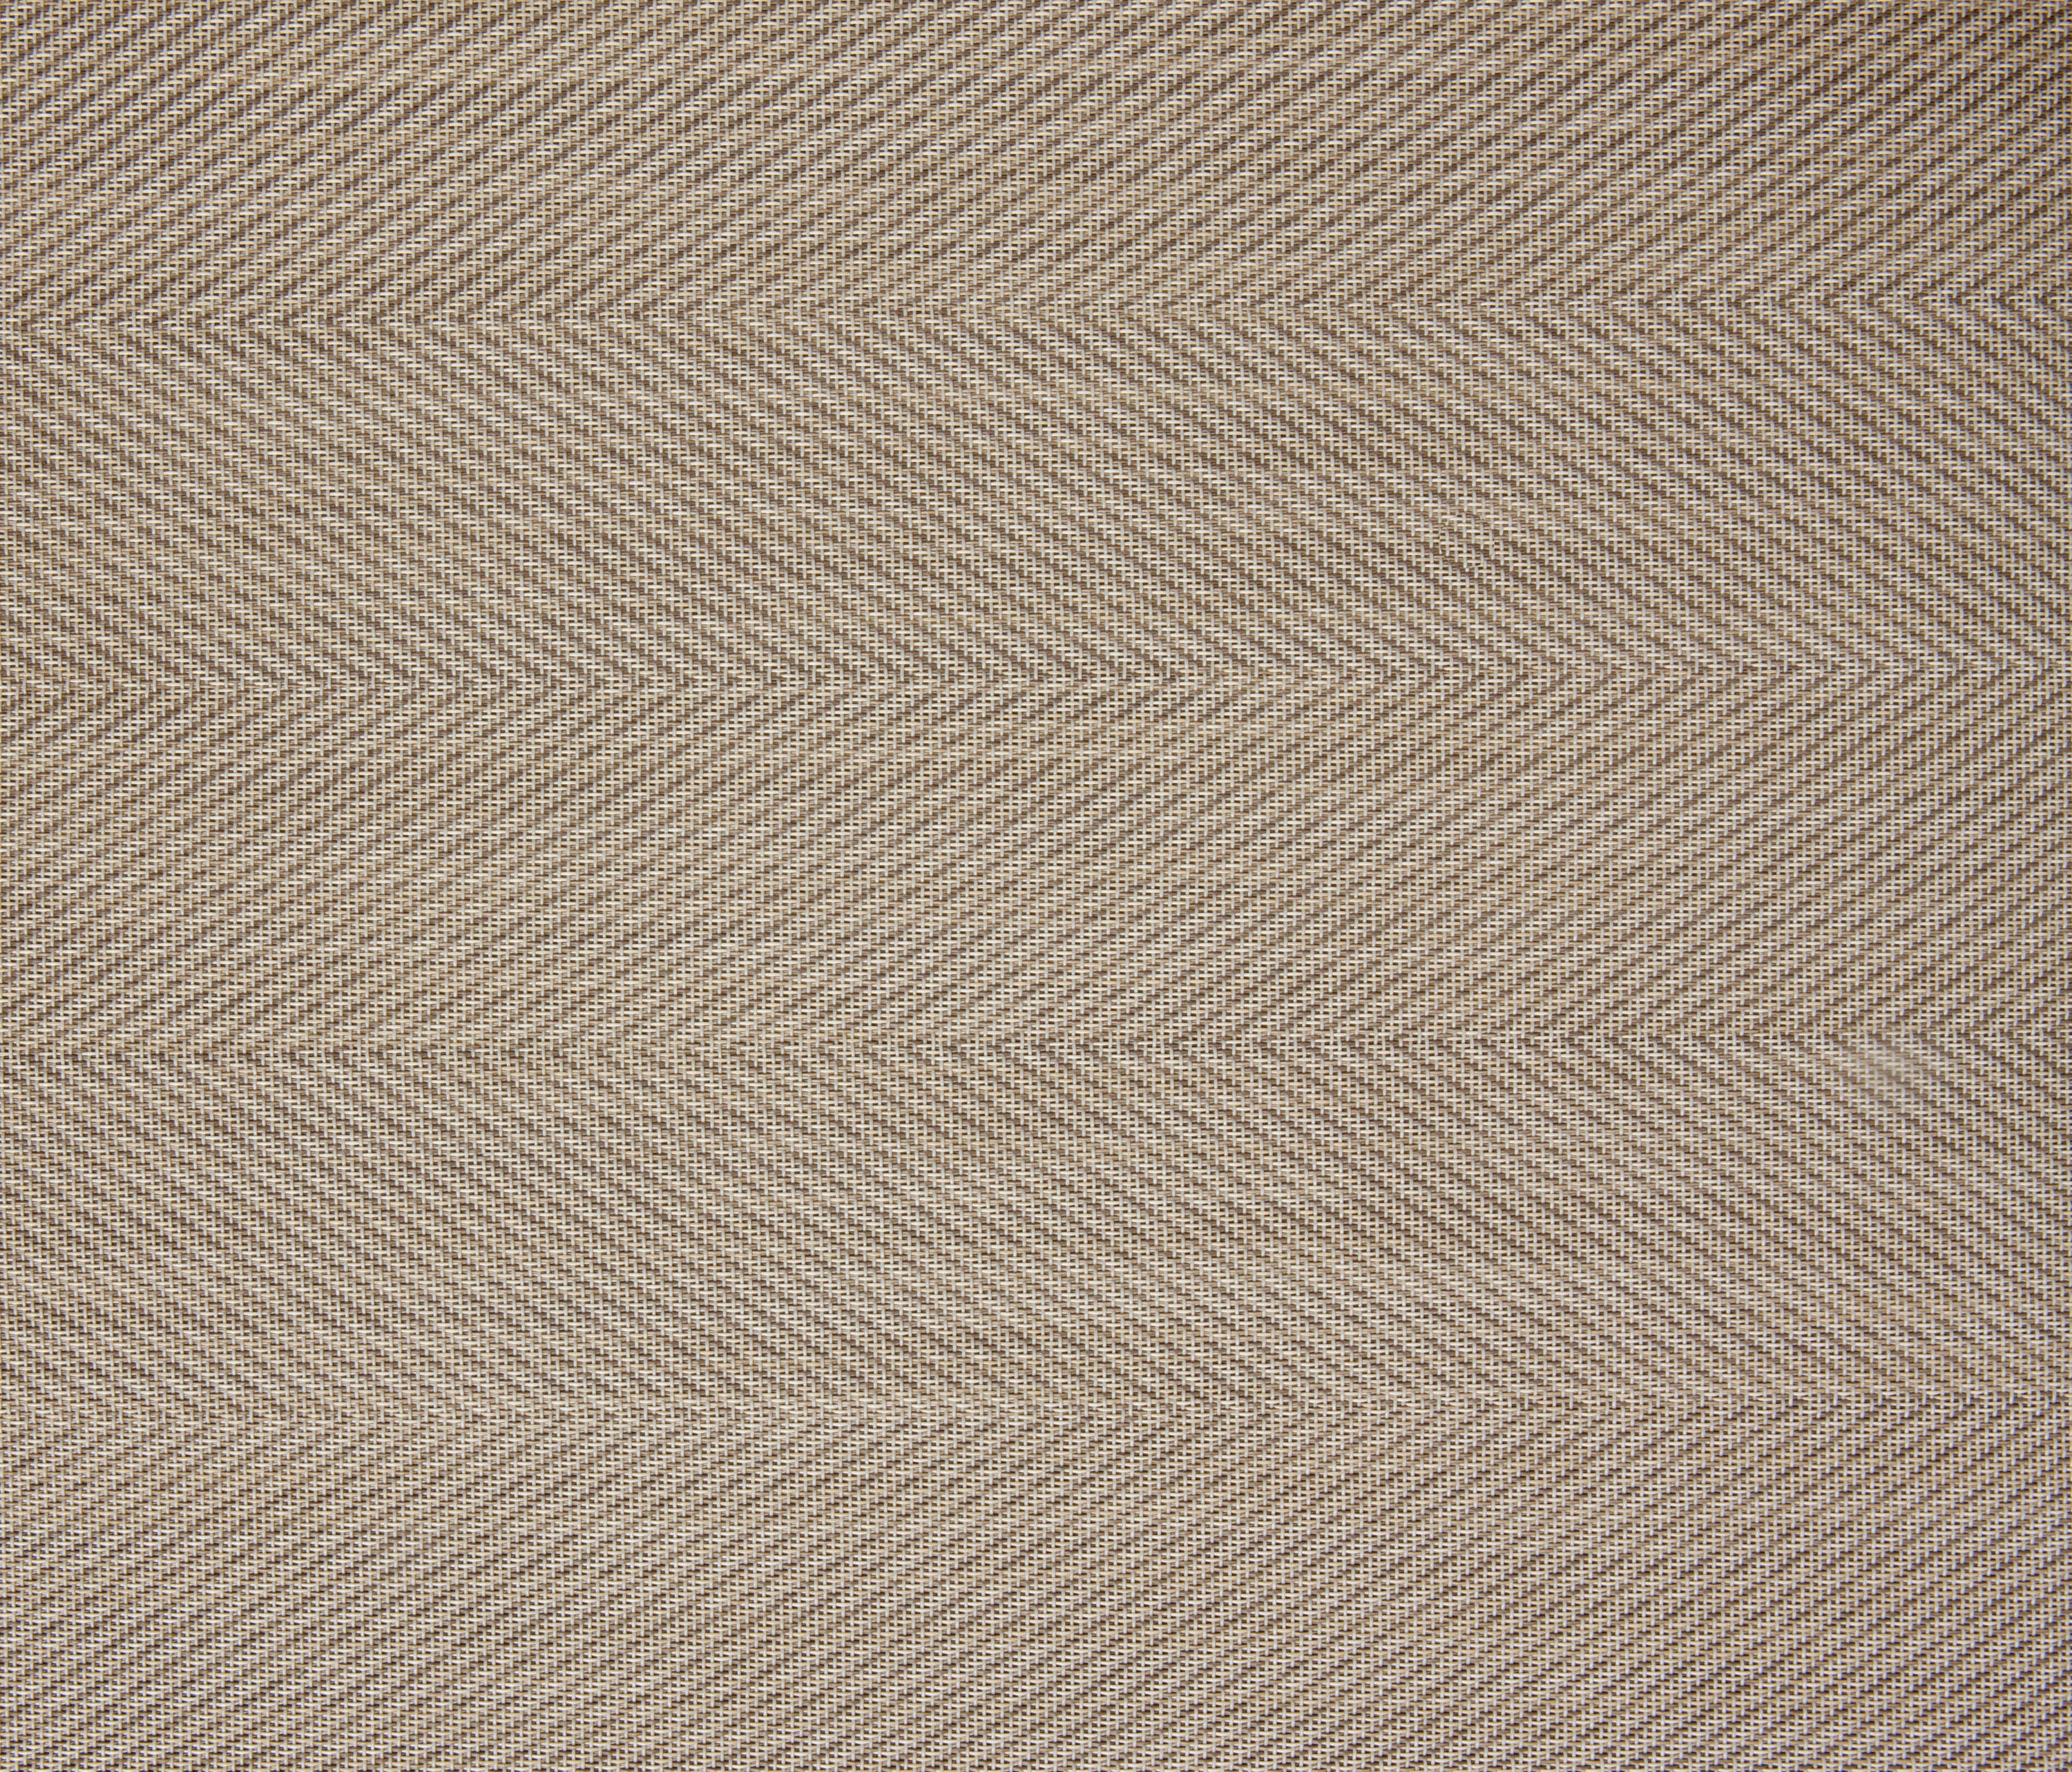 Herringbone Oyster Wall To Wall Carpets From 2tec2